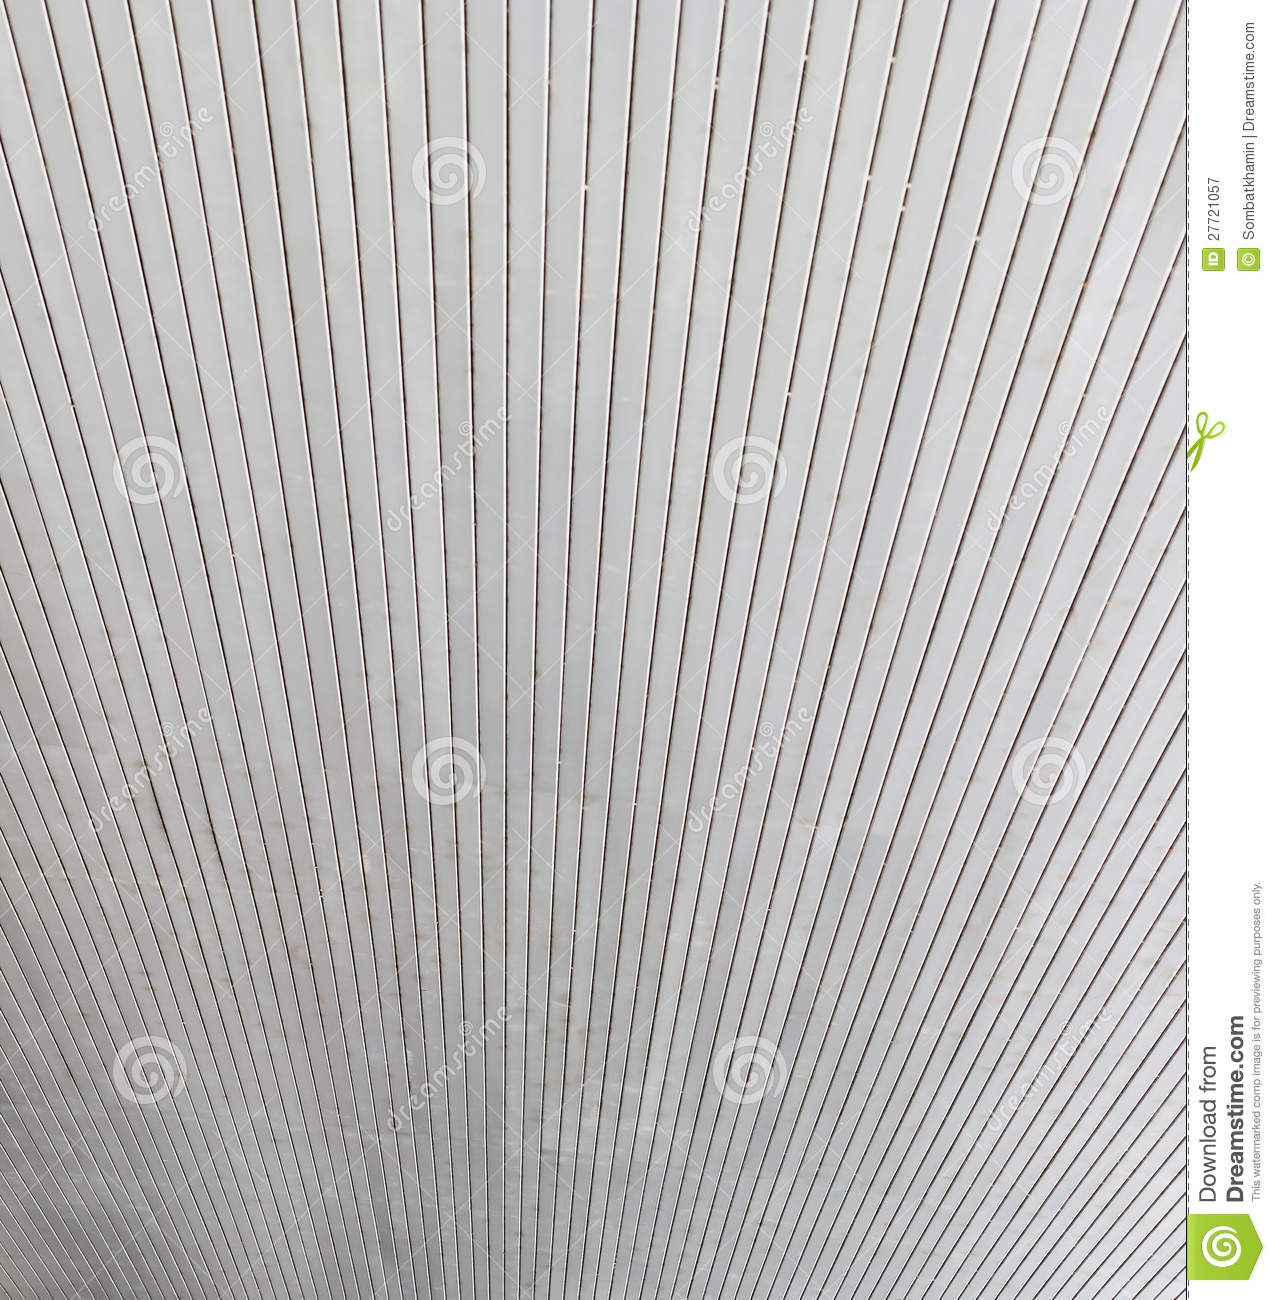 Aluminum ceiling of public building